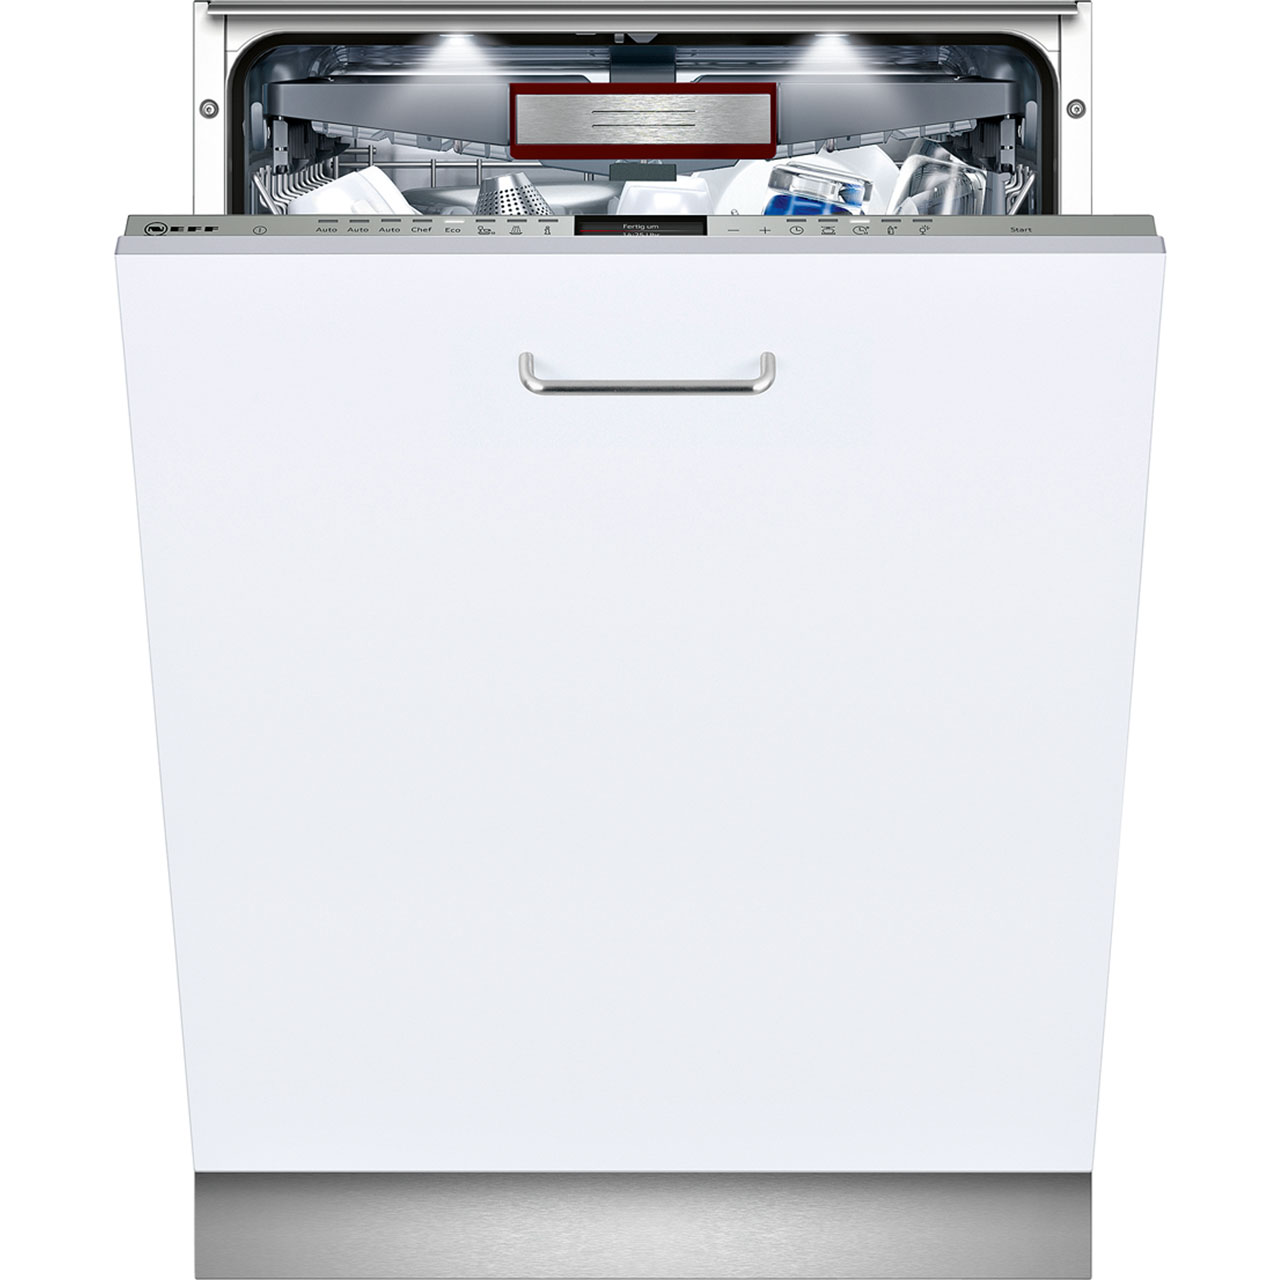 Neff Extra Height S727P70Y0G Integrated Dishwasher in Stainless Steel